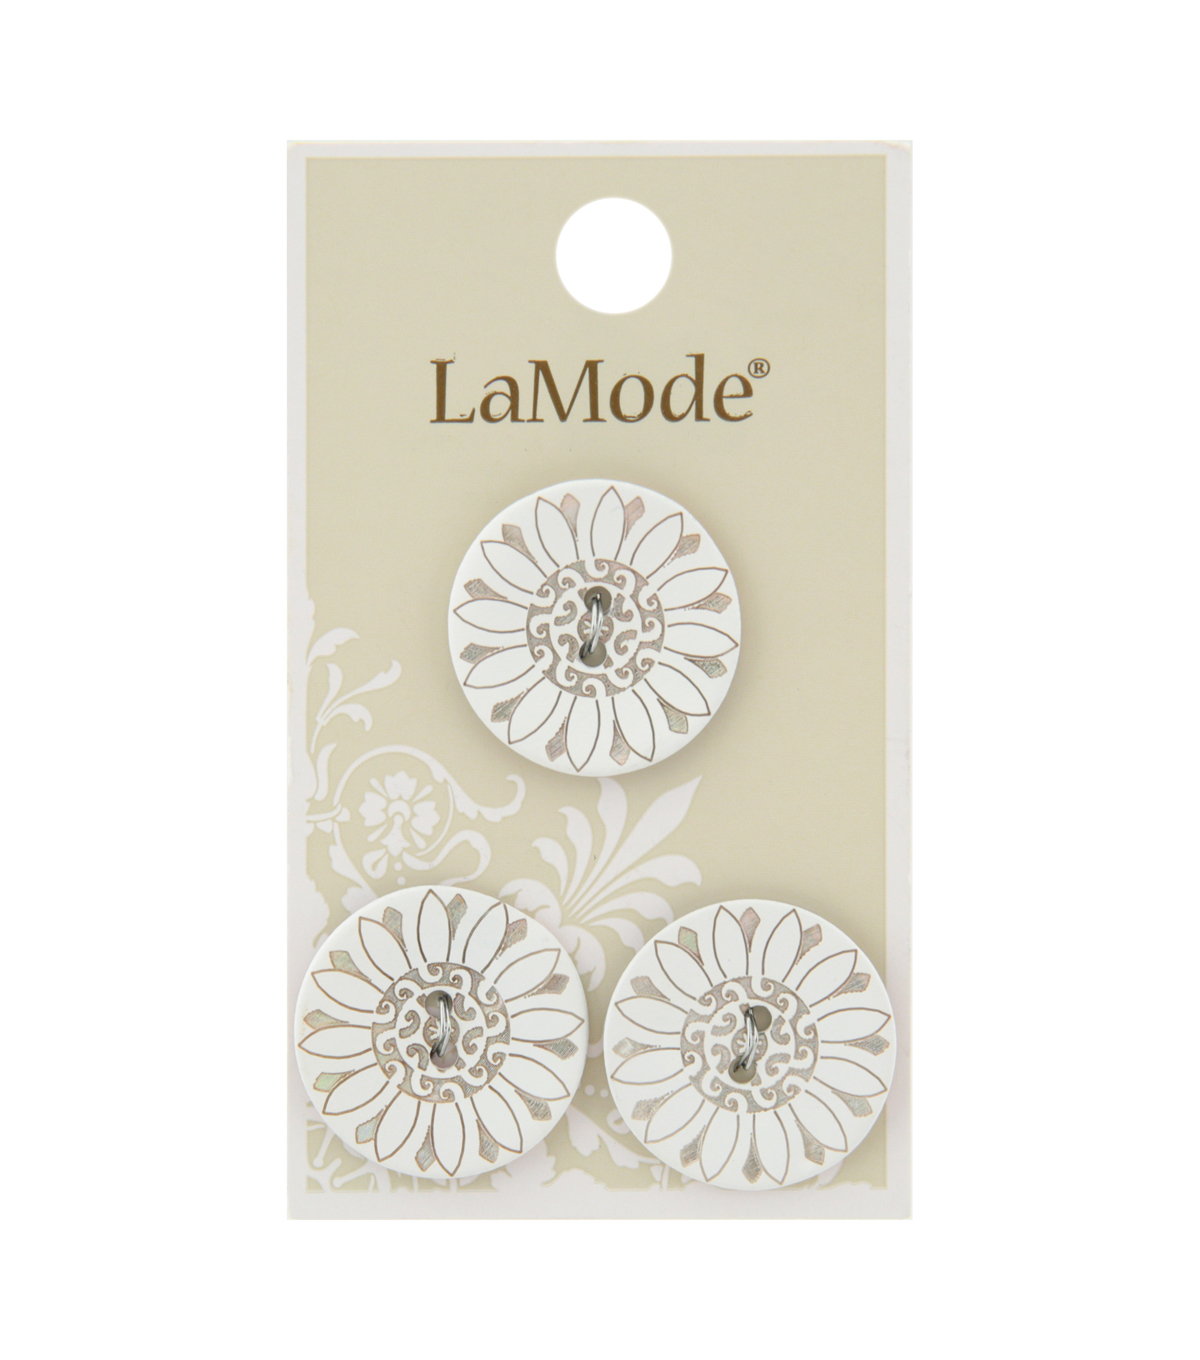 La Mode 3 pk 22 mm Agoya Shell 2 Hole Buttons-Flower Design on White